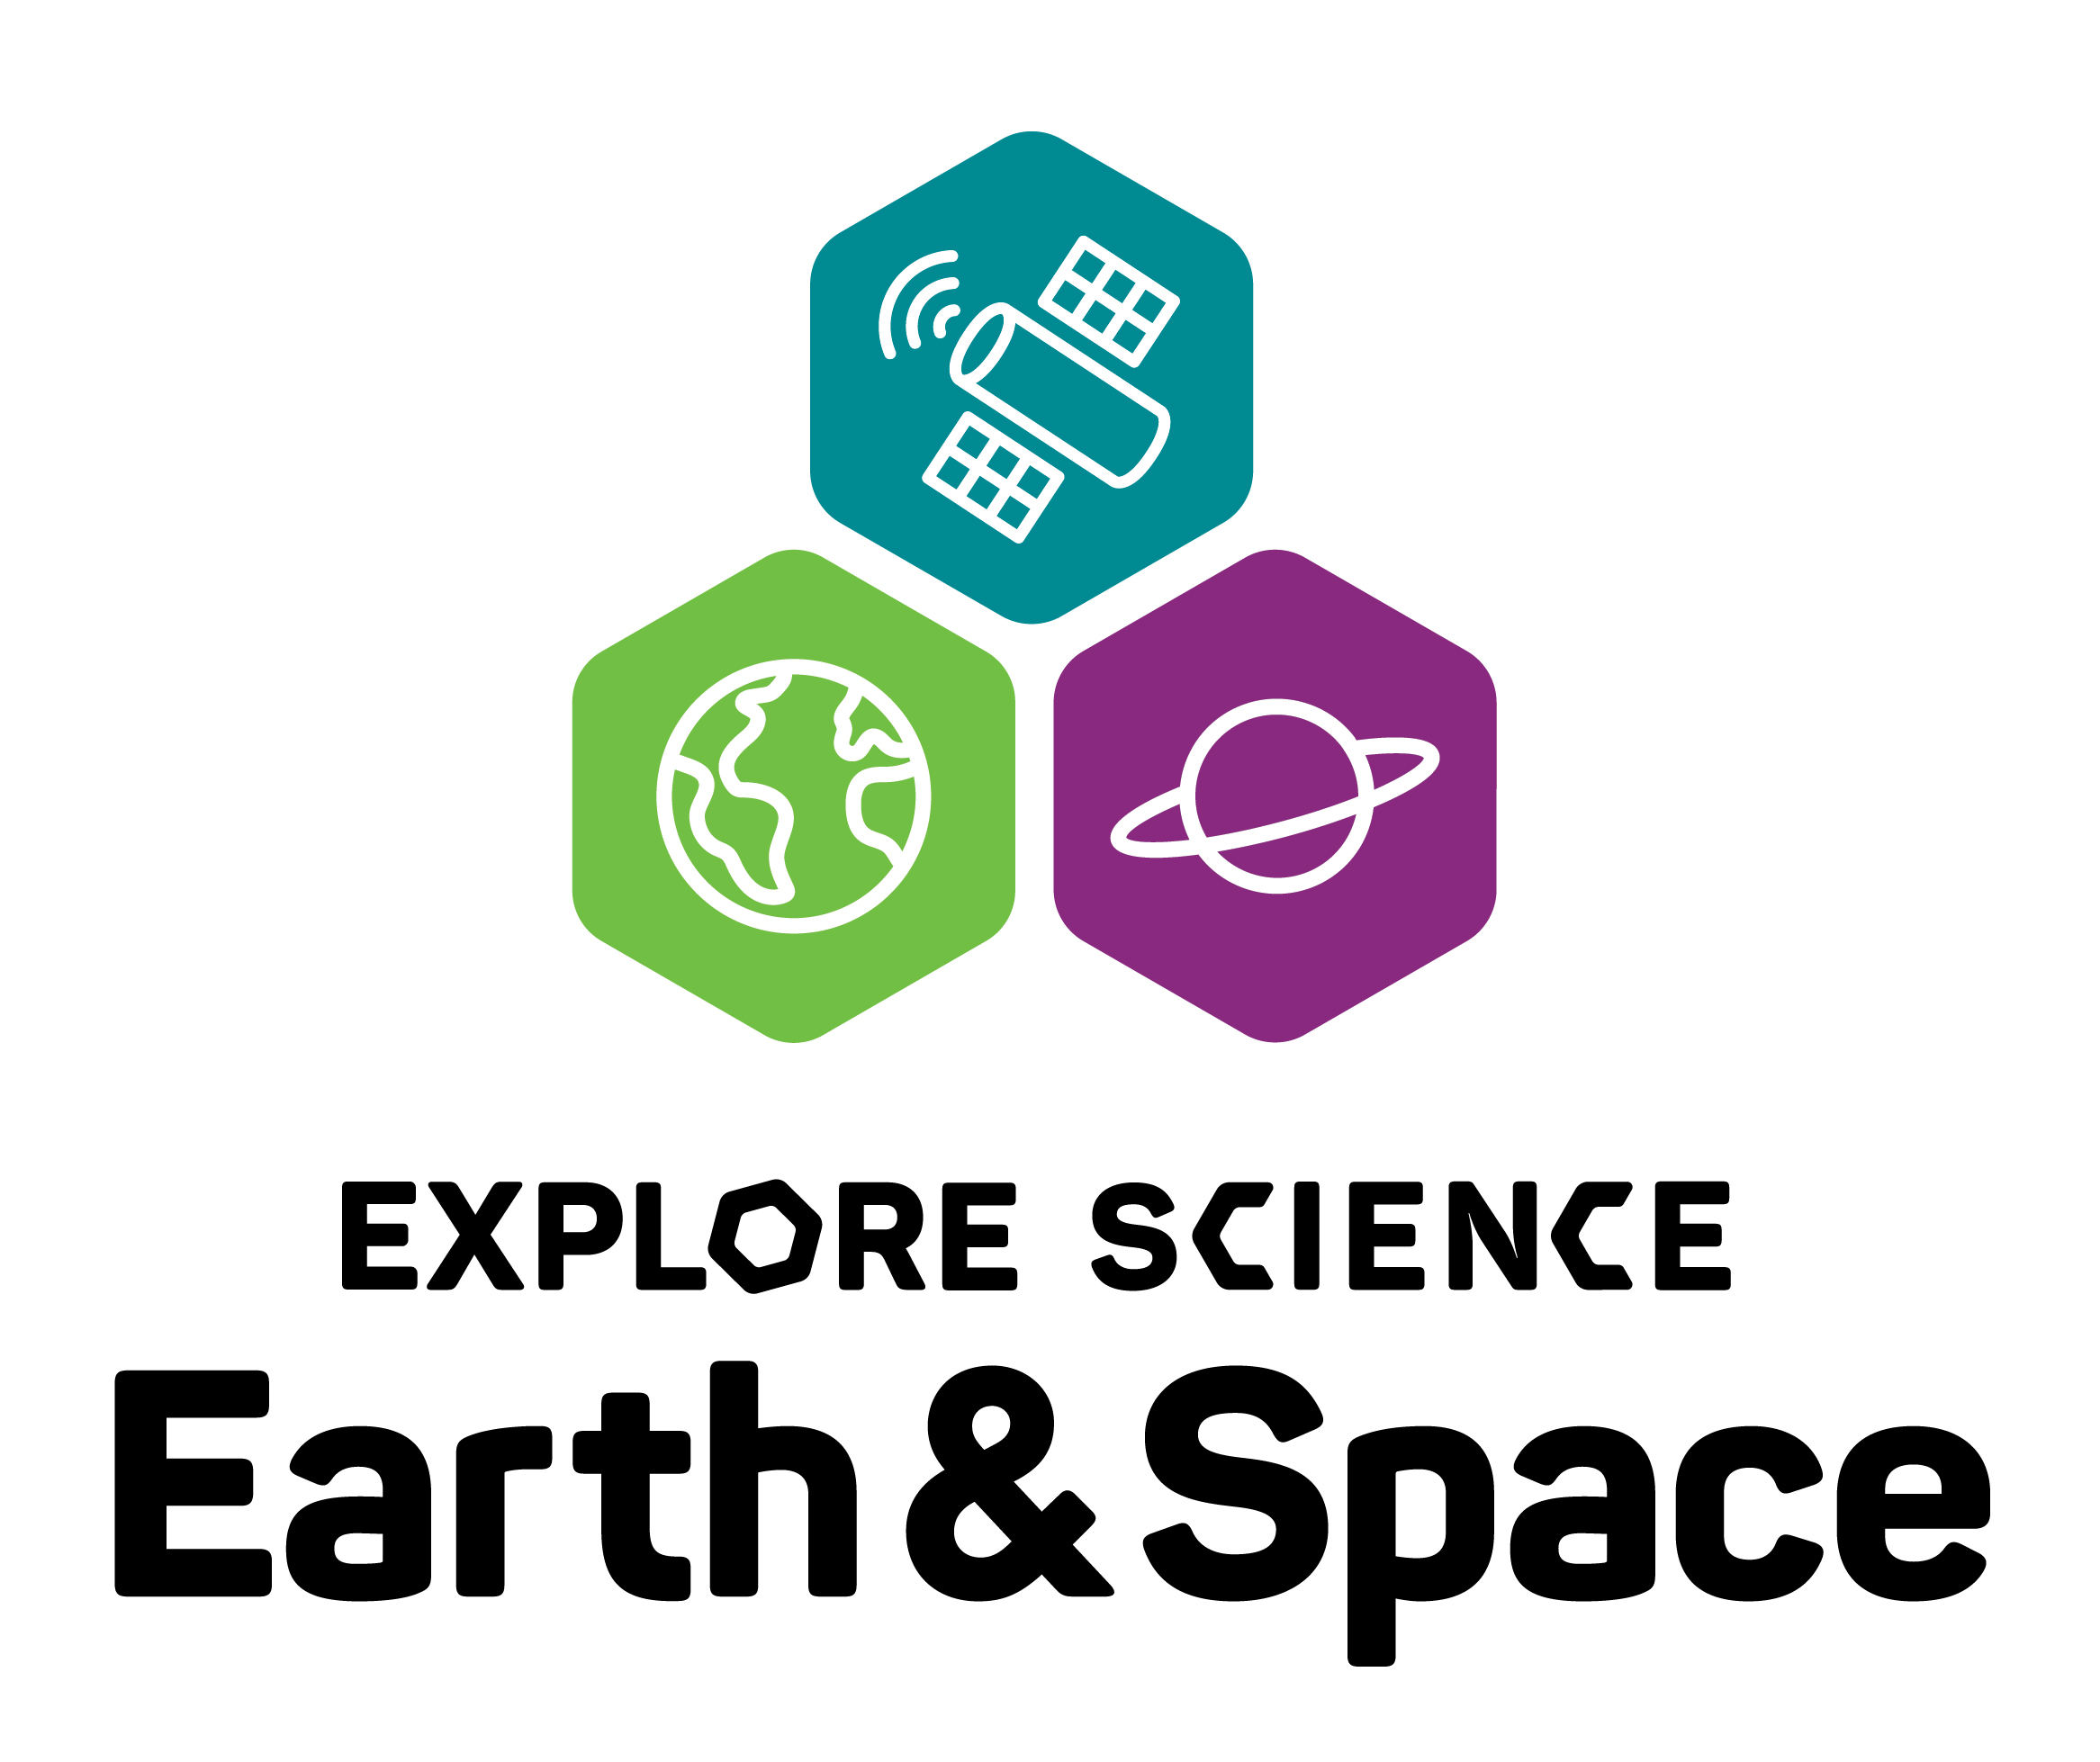 Explore Science Earth Space logo